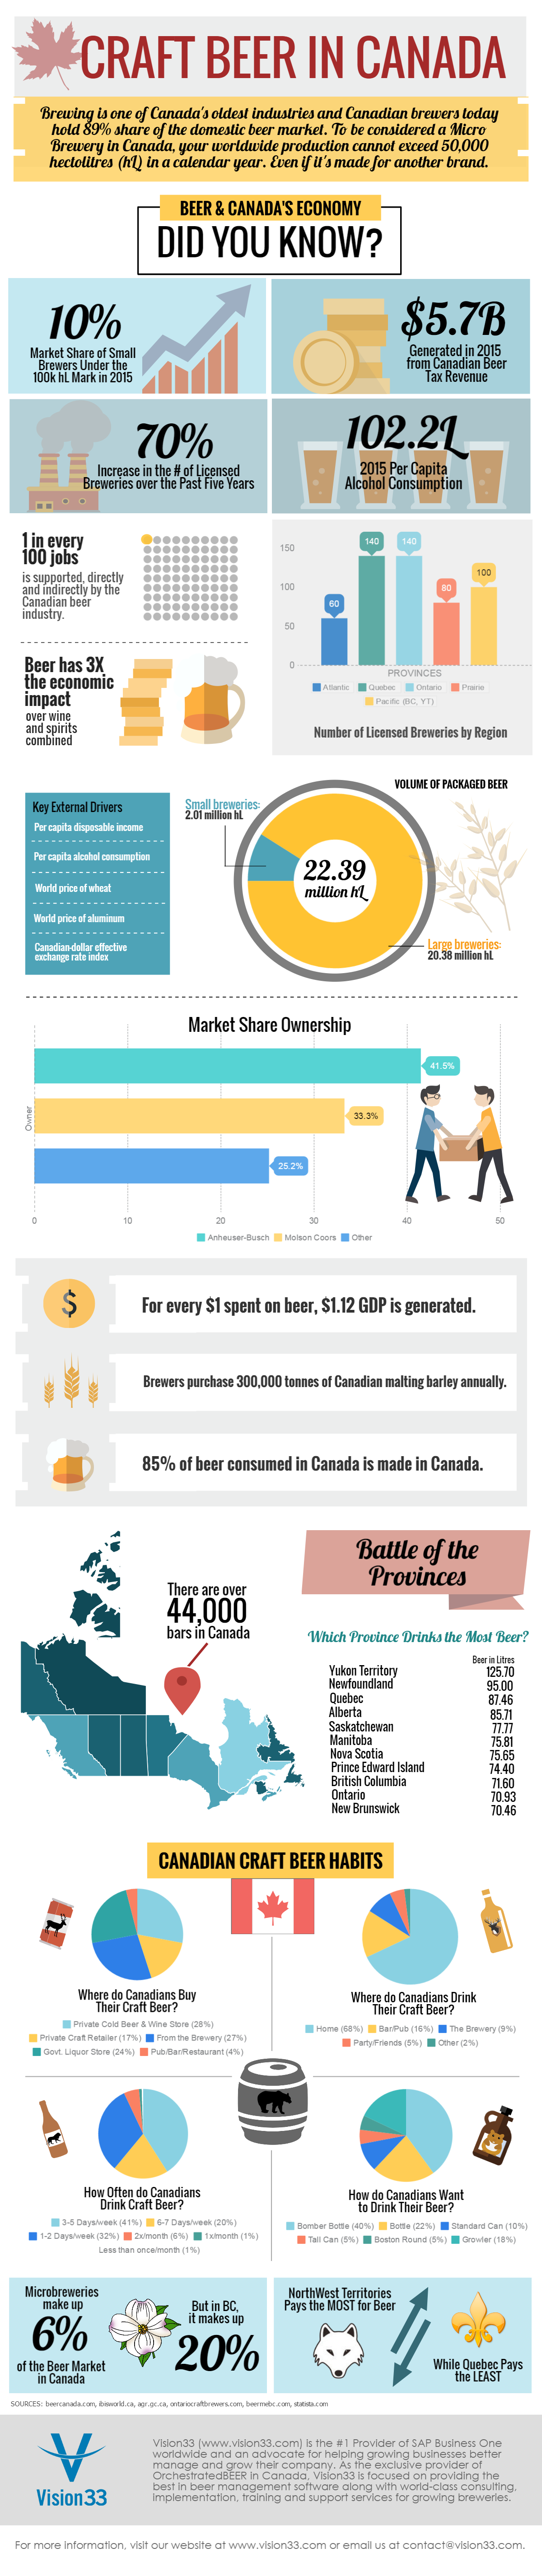 Craft Beer Industry In Canada